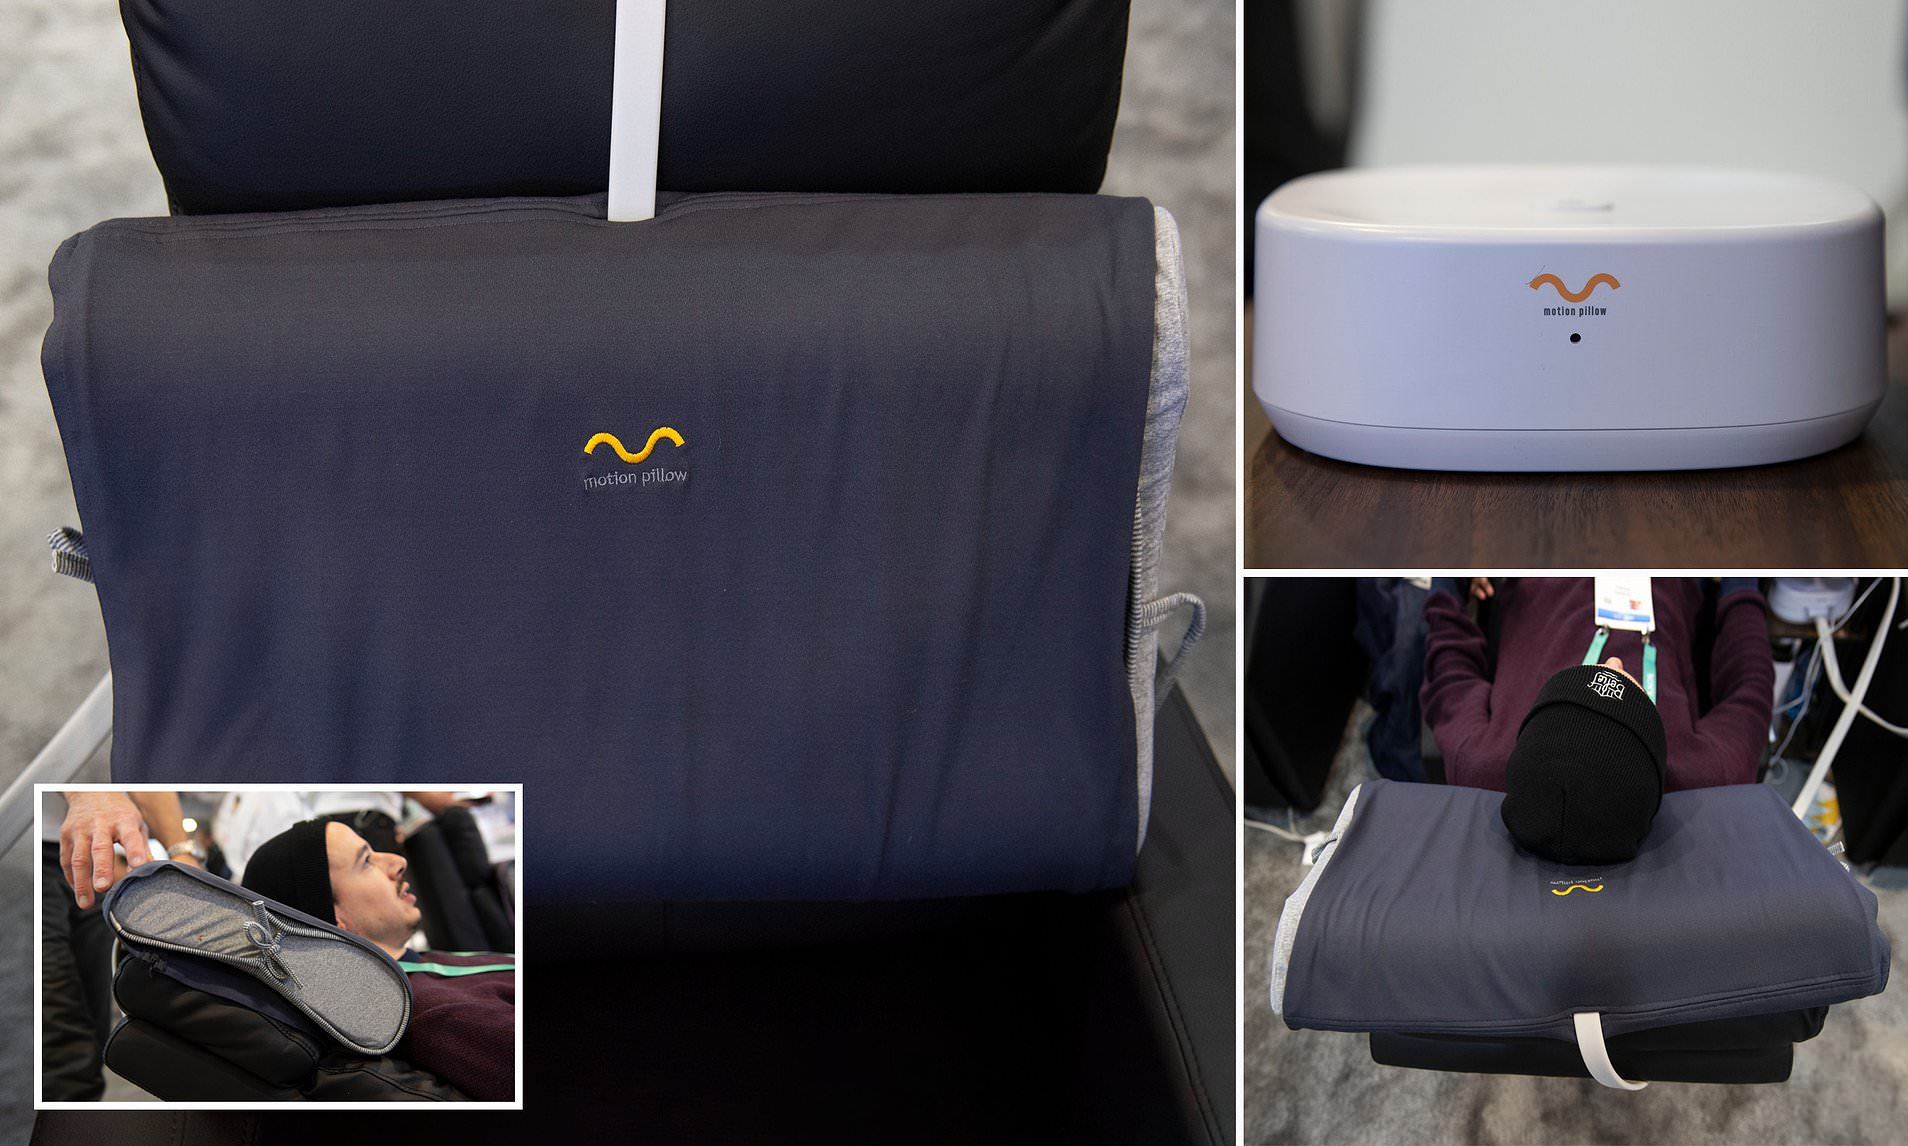 smart pillow uses airbags to adjust